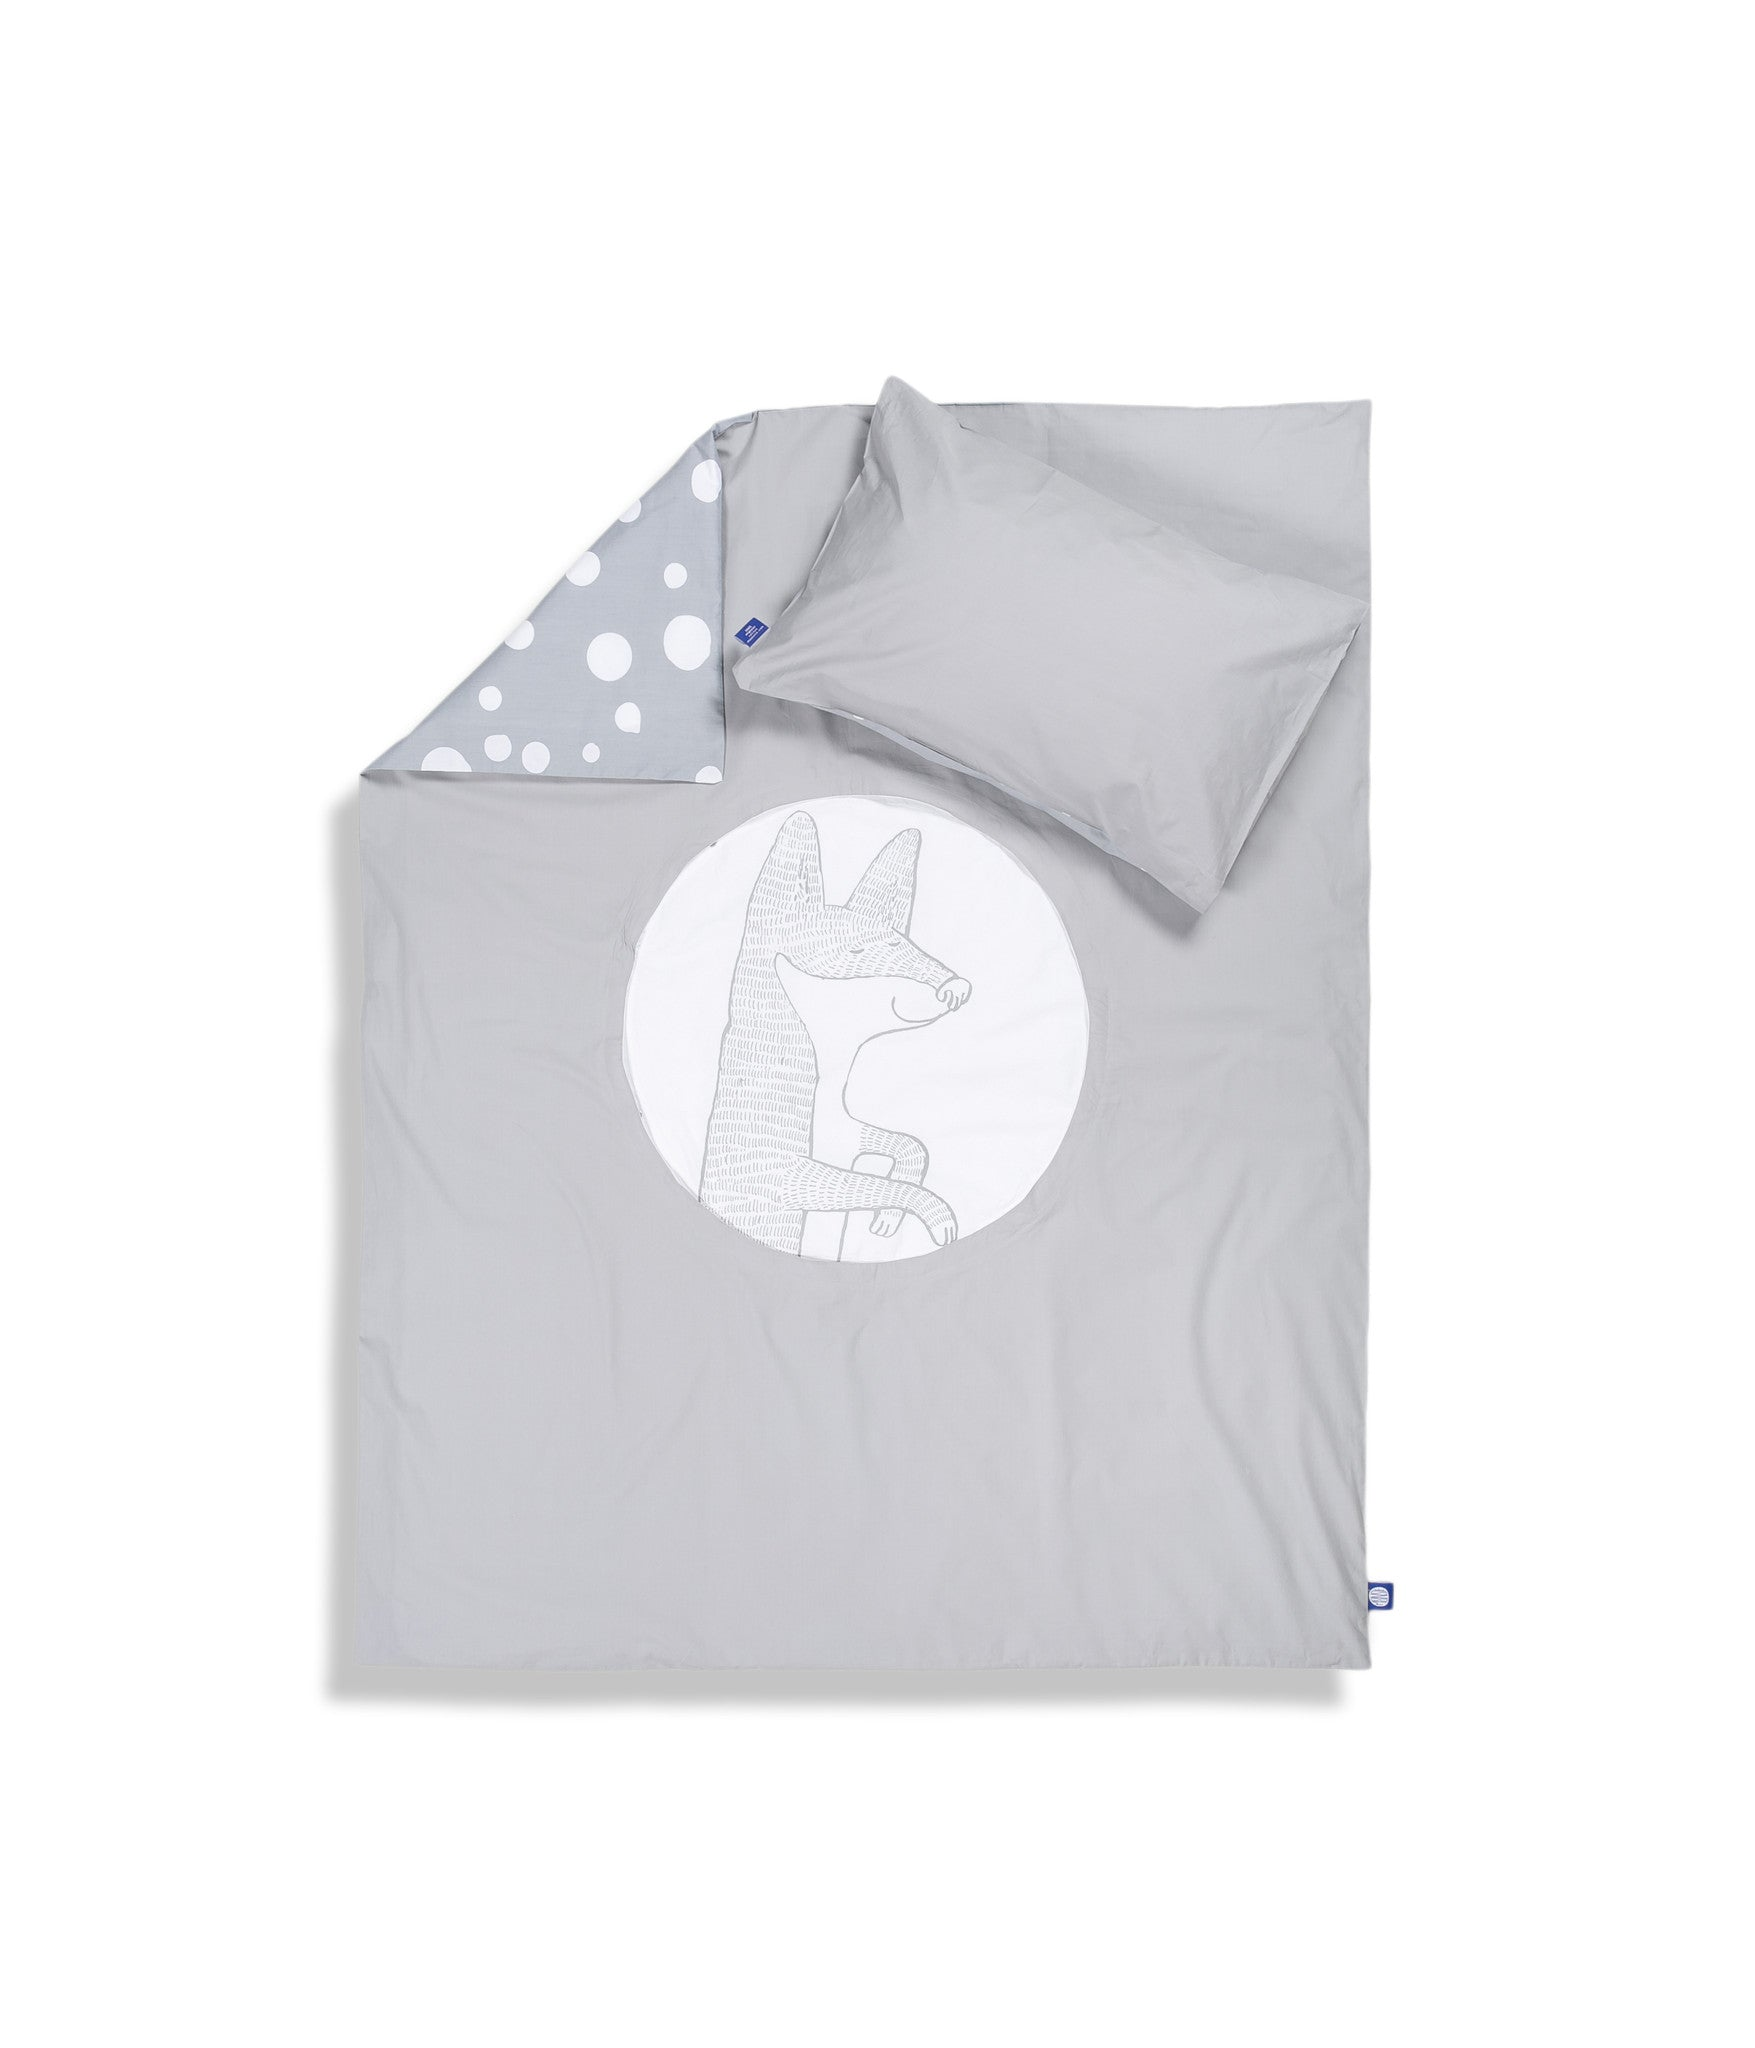 Organic cotton cot bed set. Baby bedding. Grey pillow case and grey duvet cover with fox. Dotted pattern bed linen. Customised bedding.